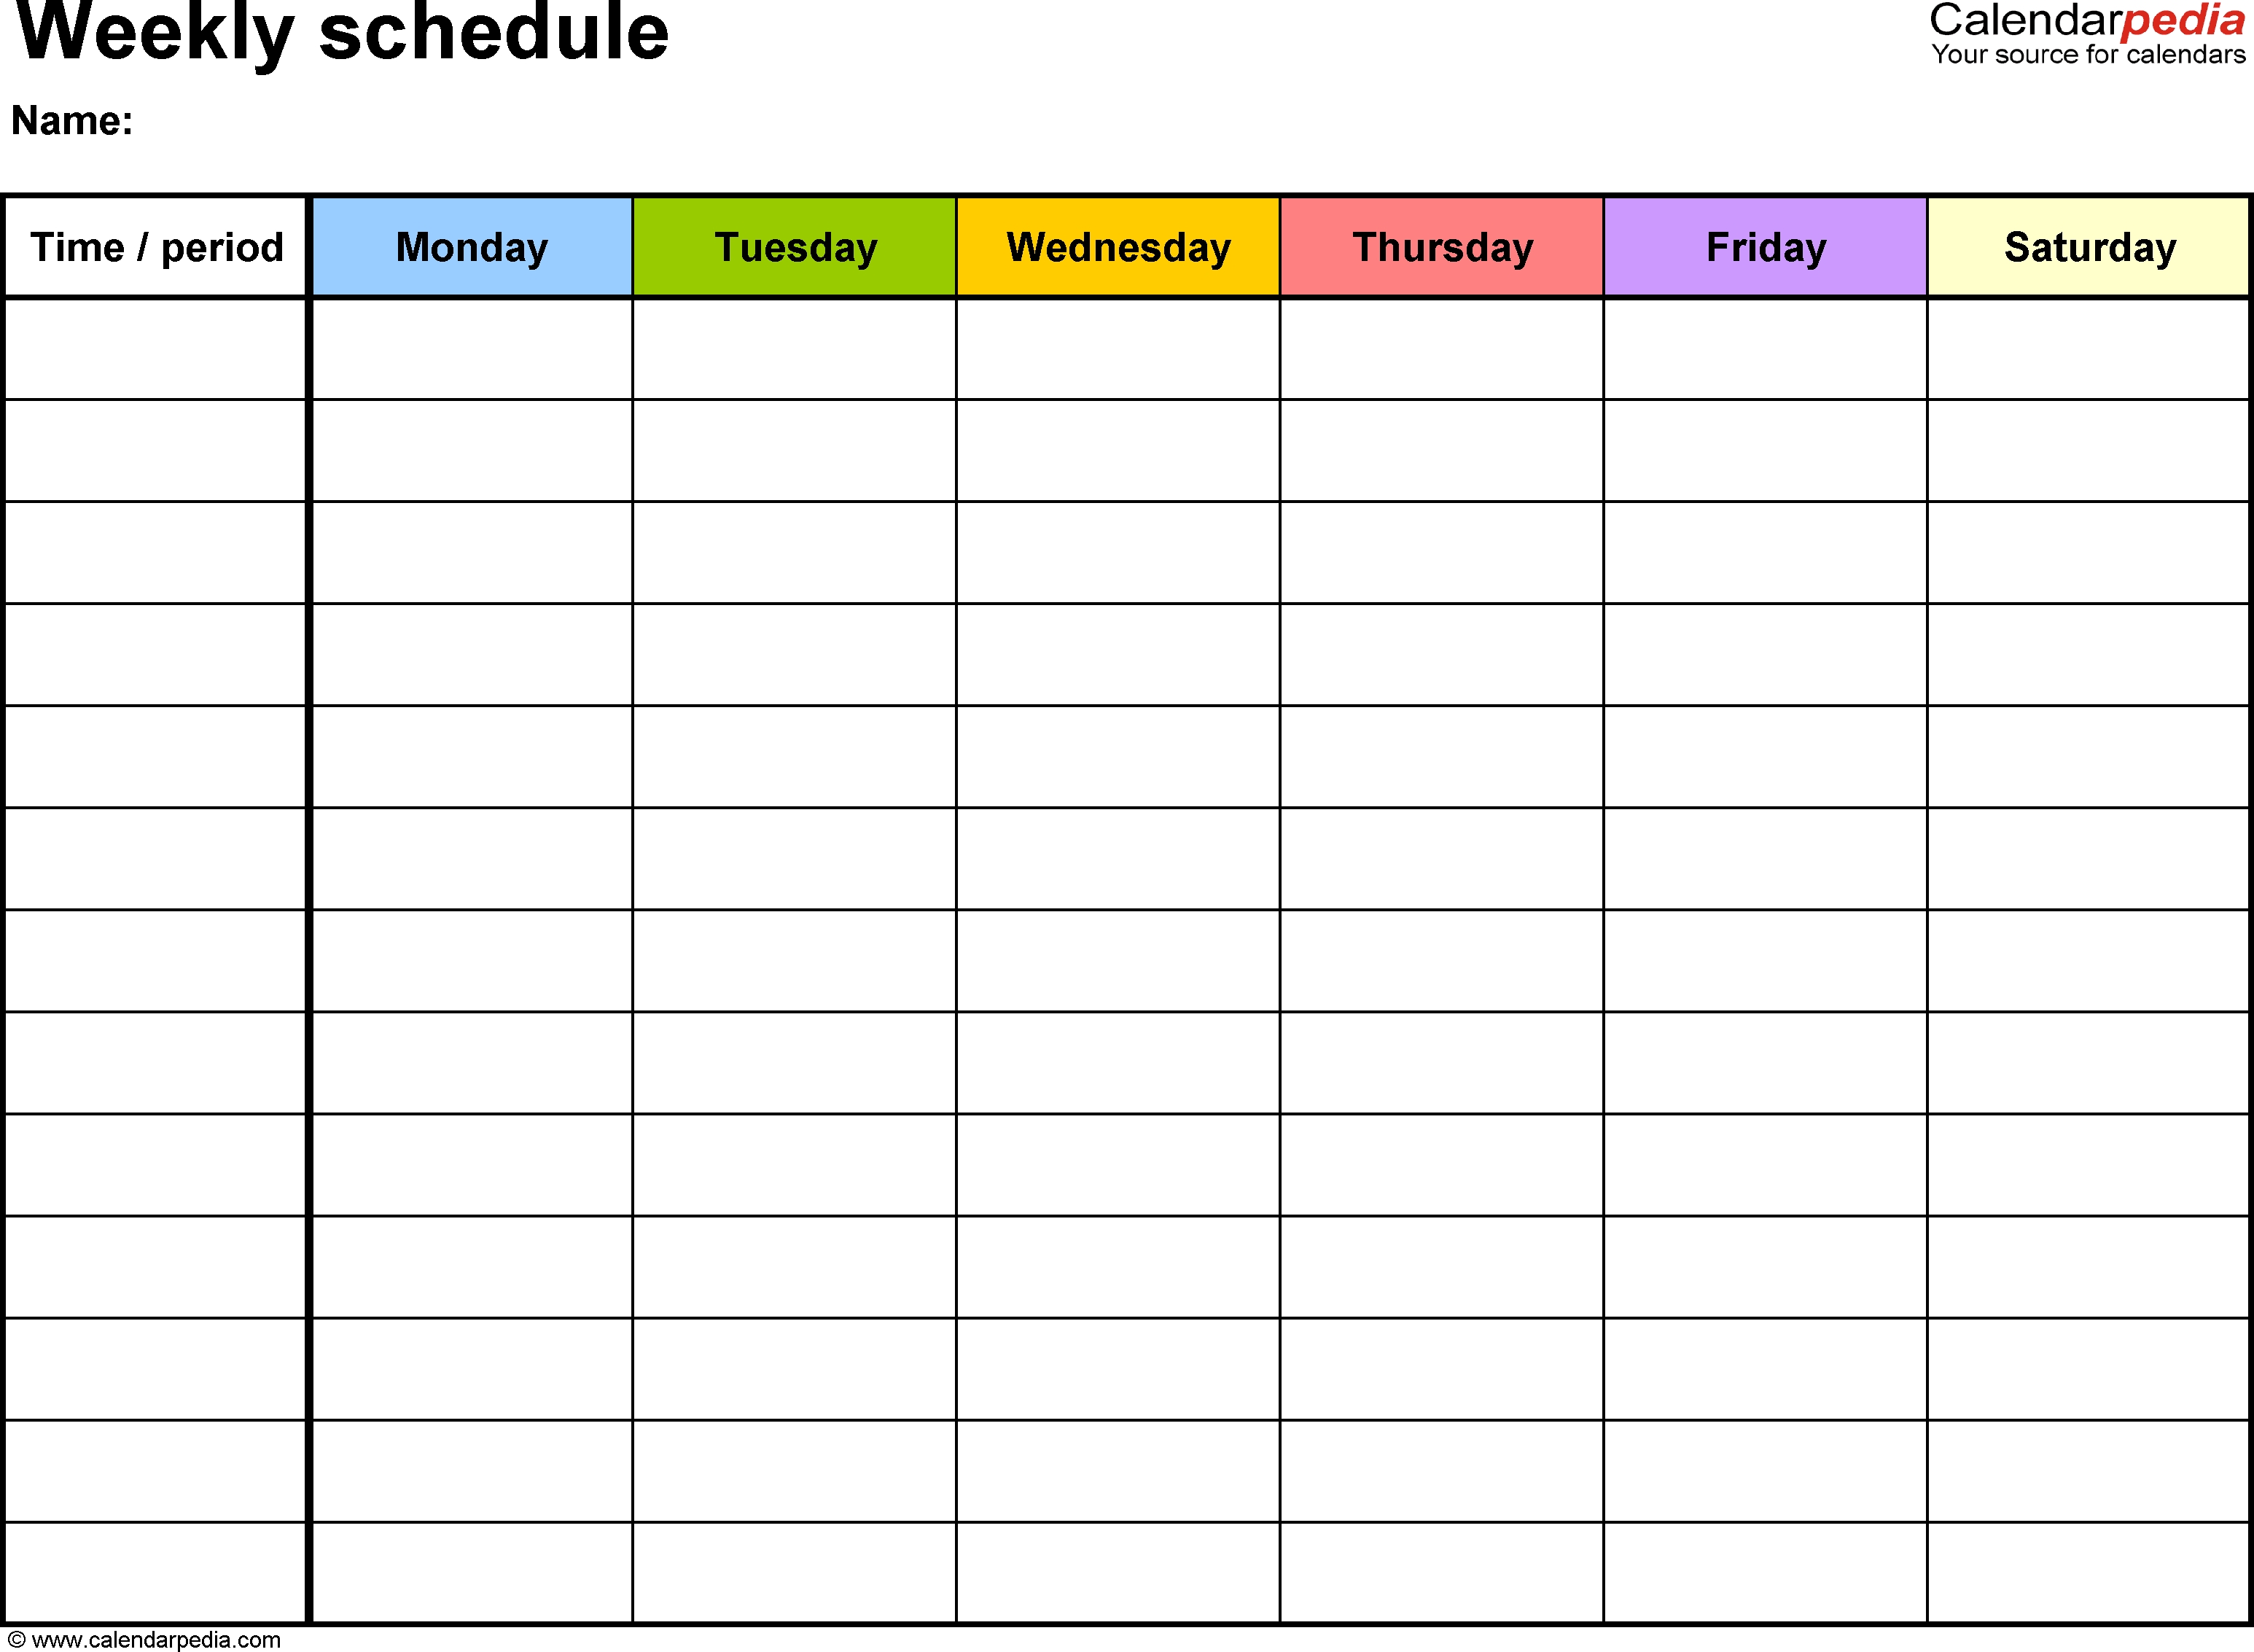 Free Weekly Schedule Templates For Word - 18 Templates throughout Blank Monday Through Friday Schedule